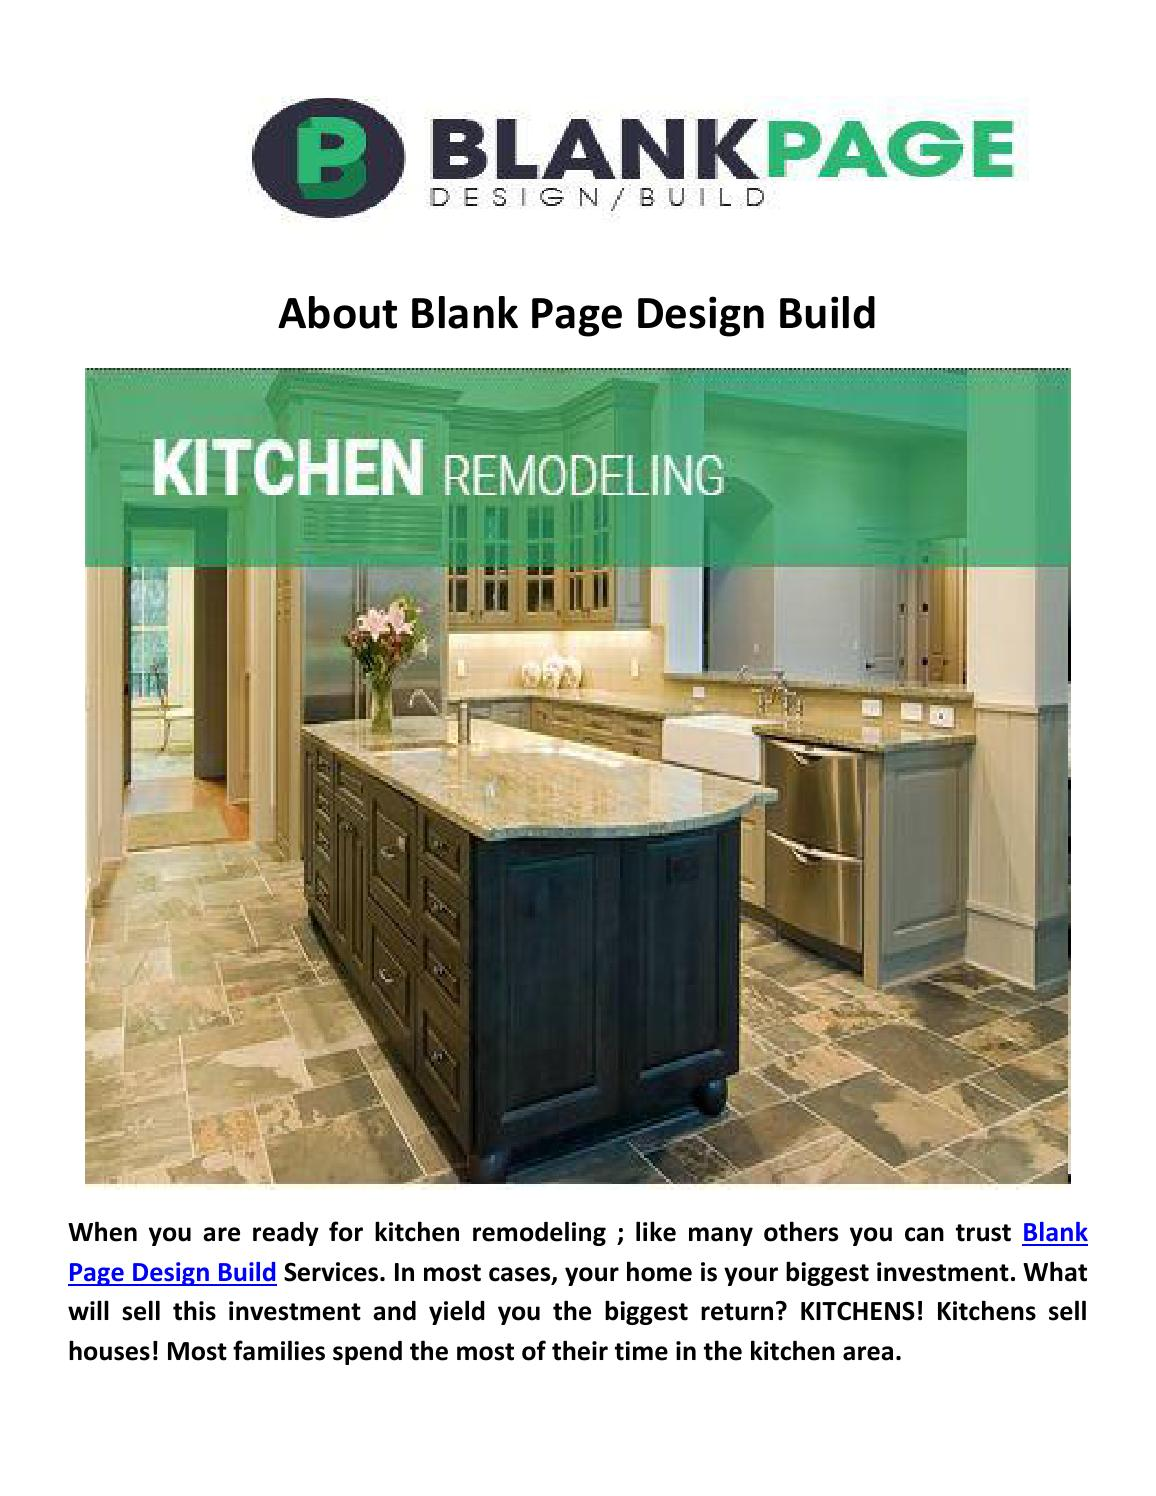 Blank page design build kitchen remodeling arlington by Blank Page ...